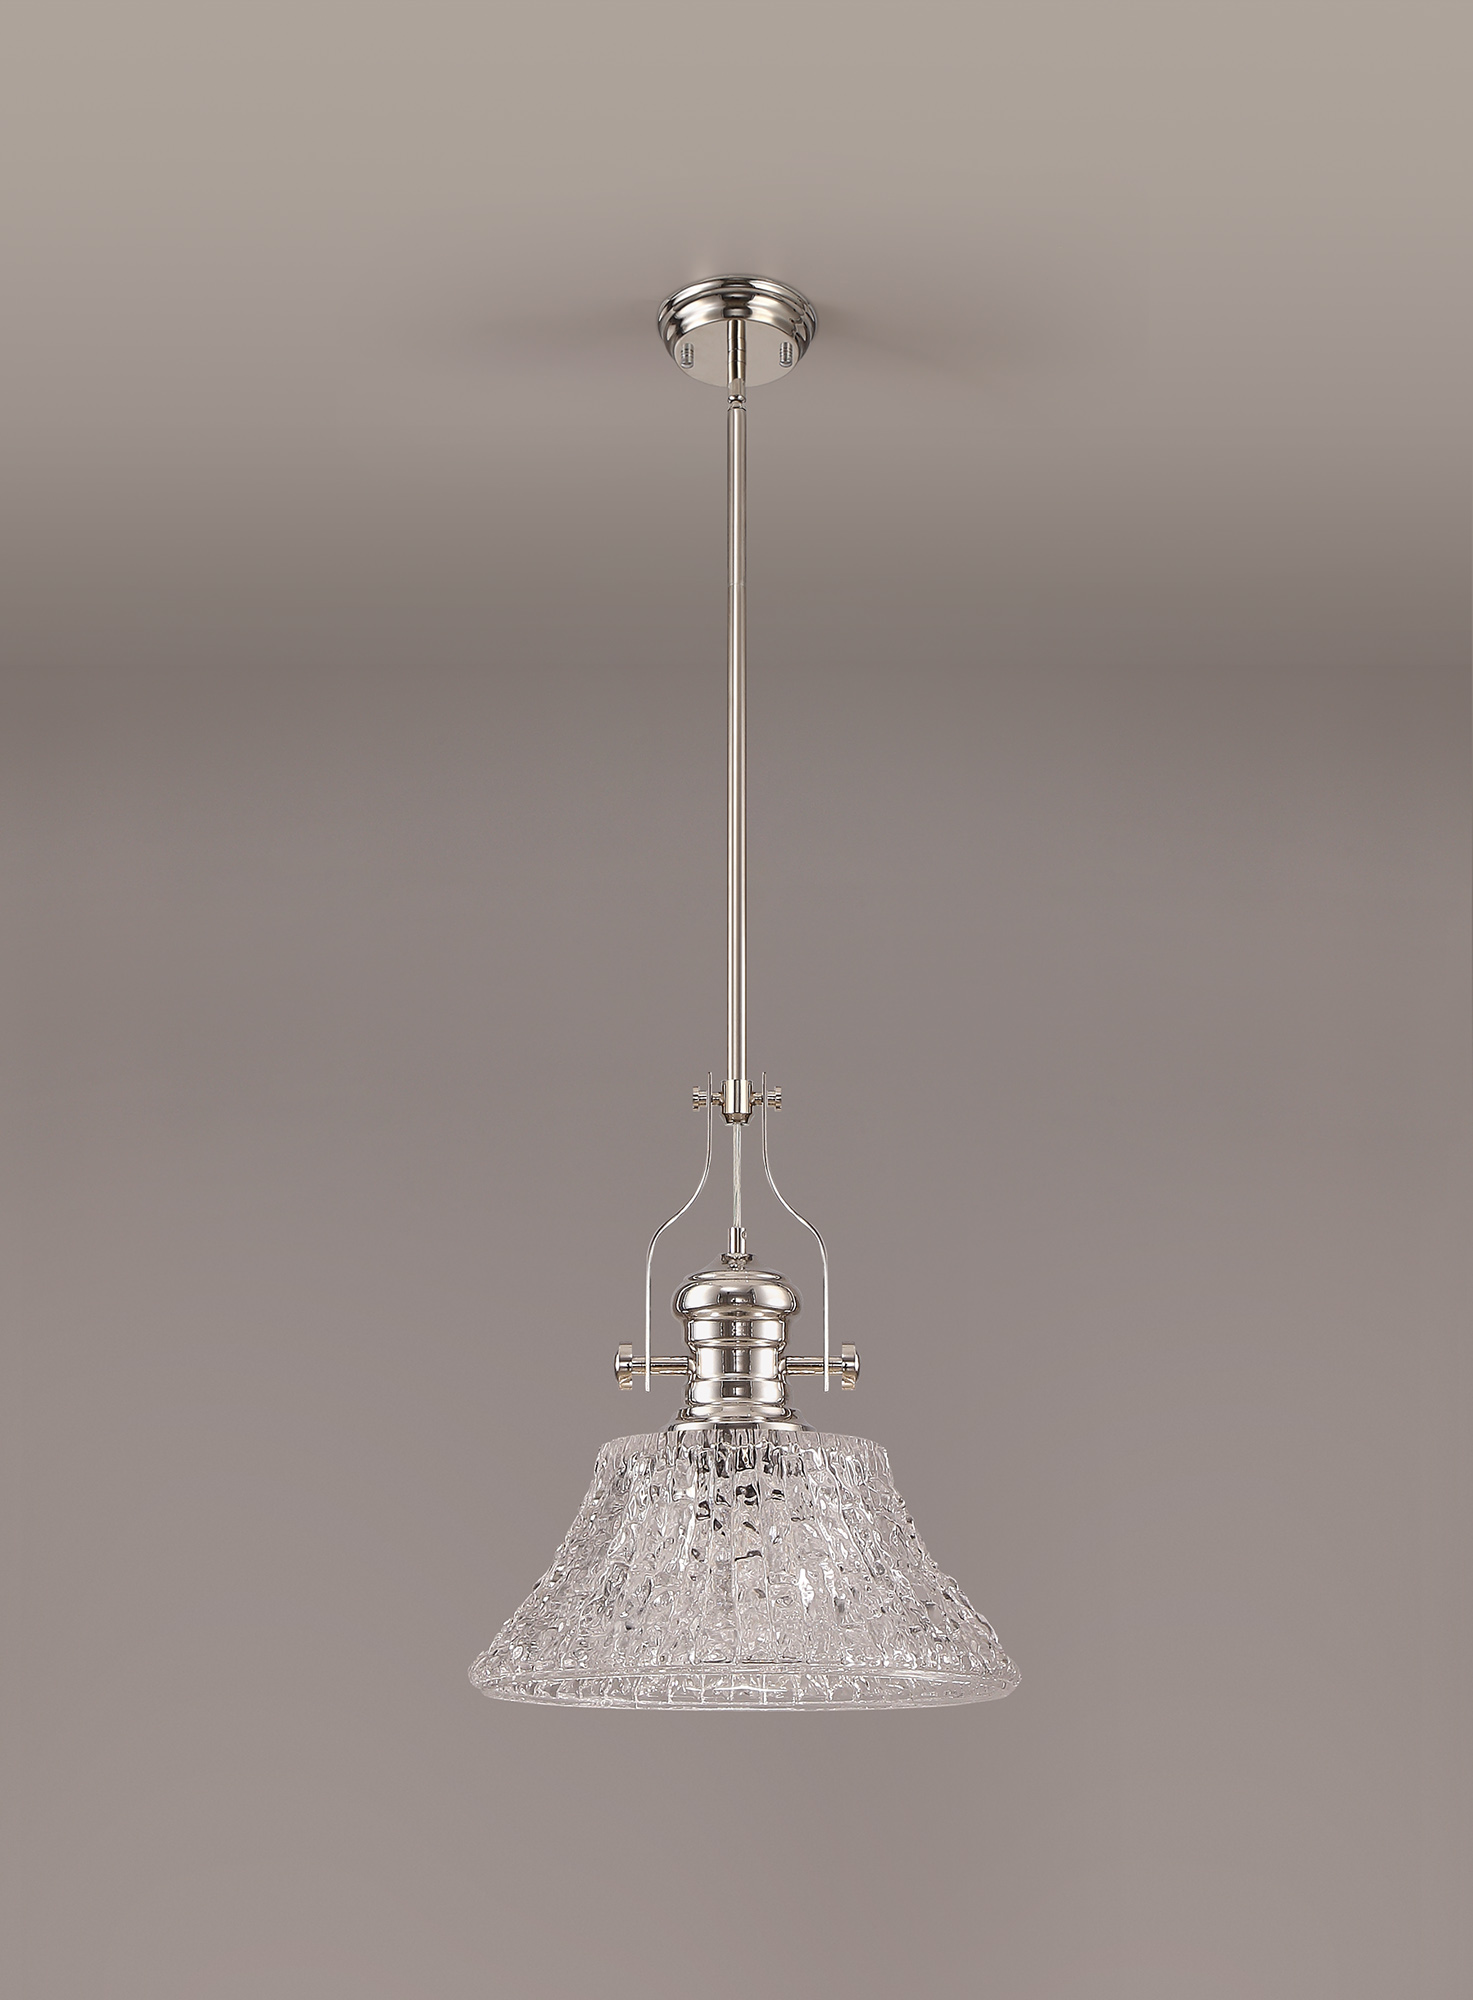 Pendant With 38cm Patterned Round Shade, 1 x E27